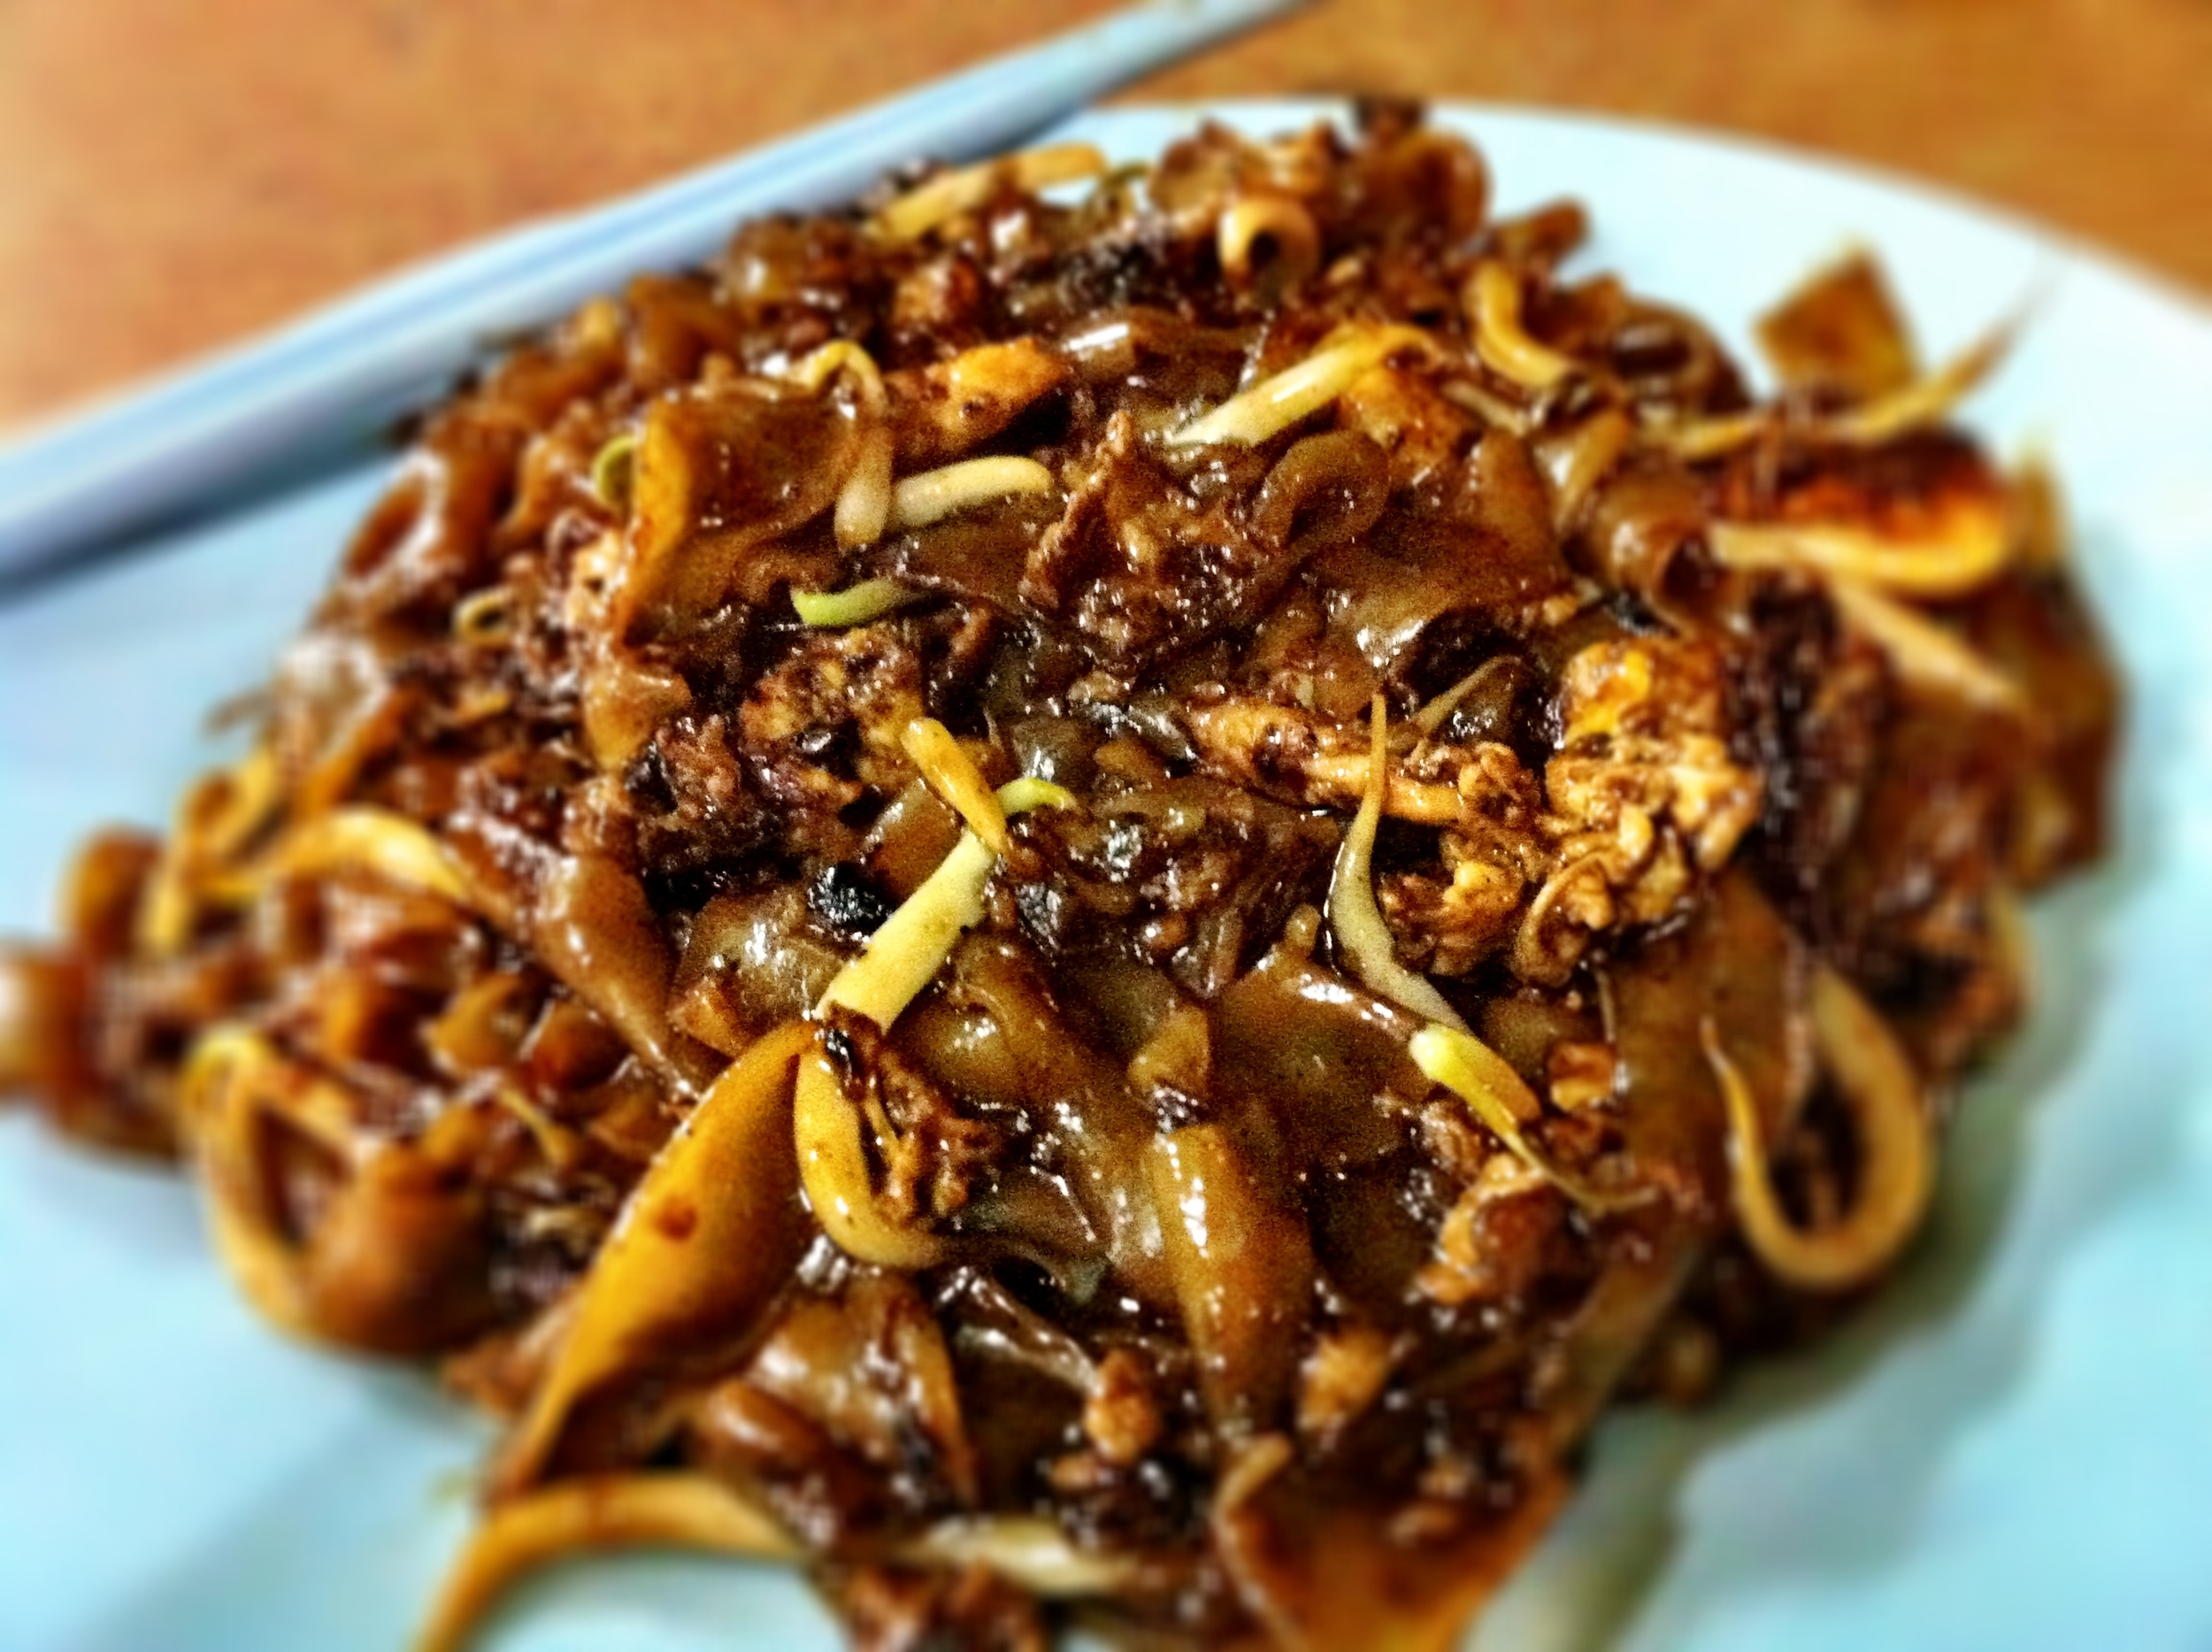 Char kway teow (stir fried flat rice noodles with dark soy sauce, cockles, eggs and bean sprouts): Hill Street Fried Kway Teow: Blk 16, Bedok South Road, #01-187, Singapore 460016